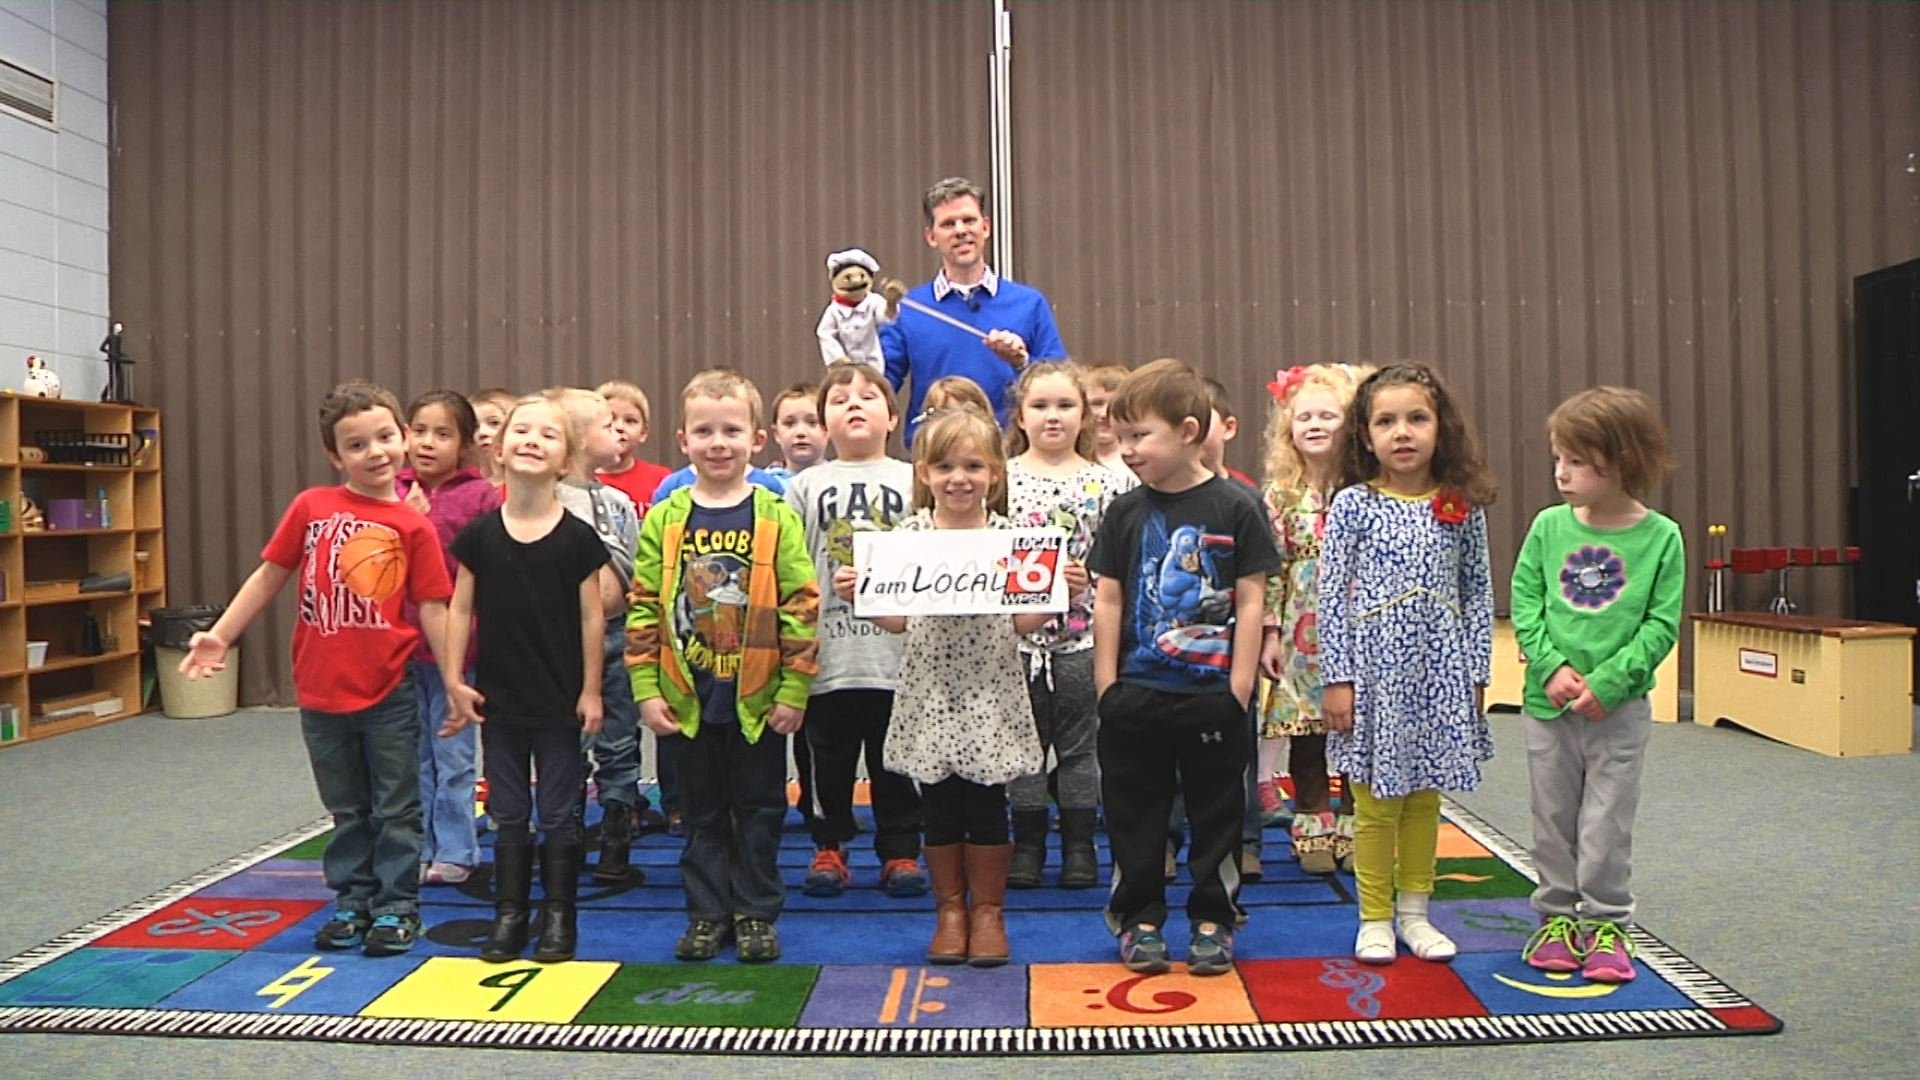 Mr. Todd Terry and his Kindergarten music class